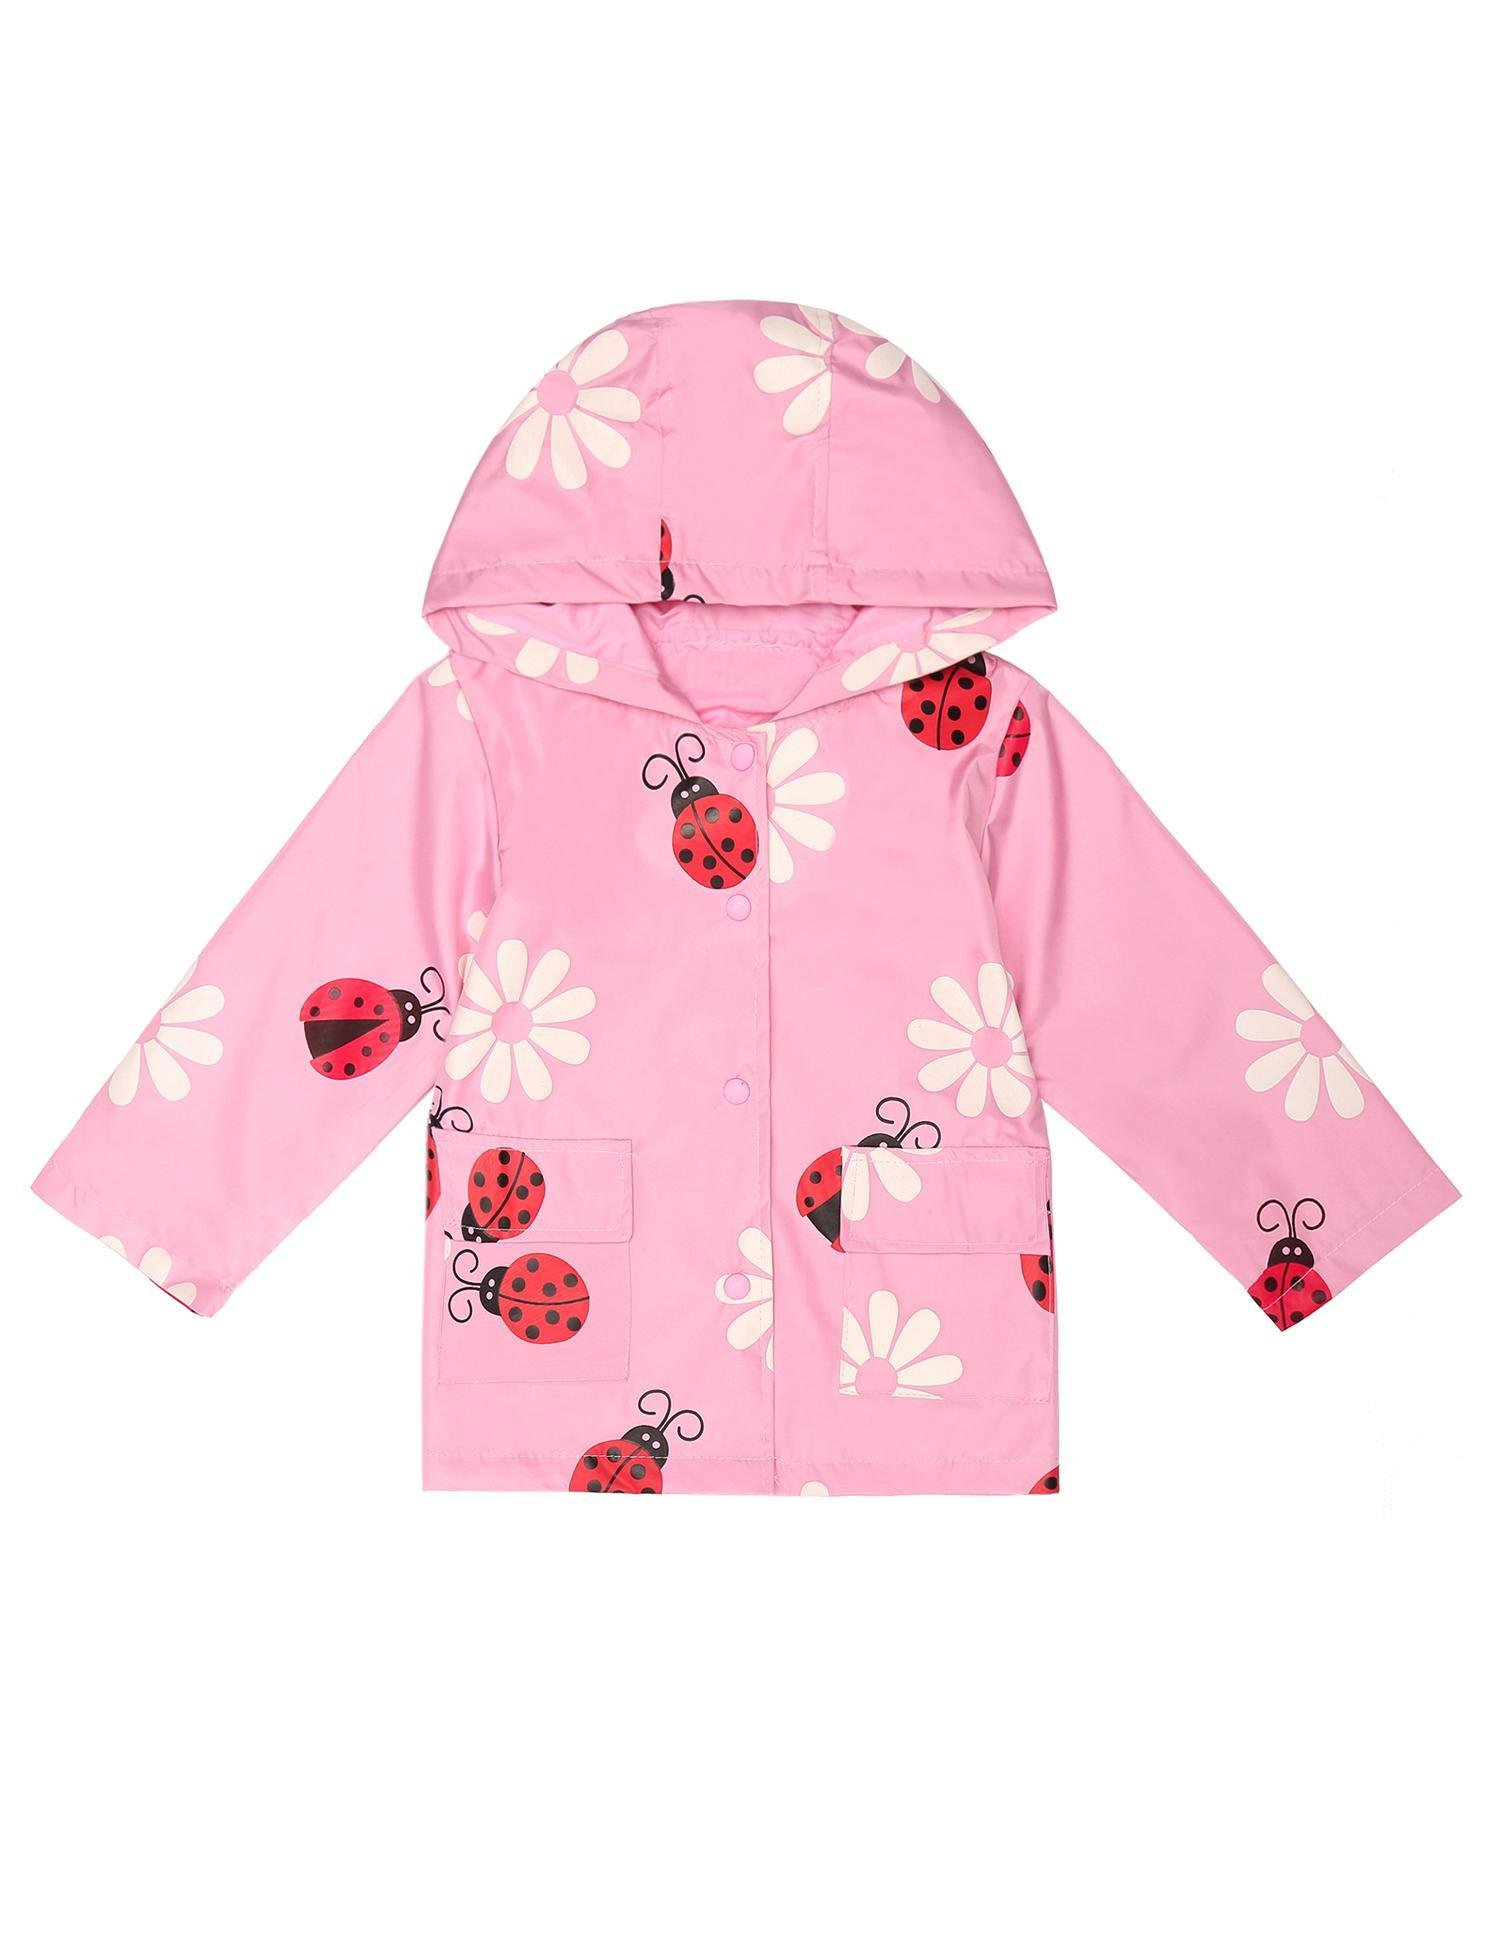 Bifast Baby Lightwight Jacket Outwear With Hooded Travel Trench Waterproof Raincoat